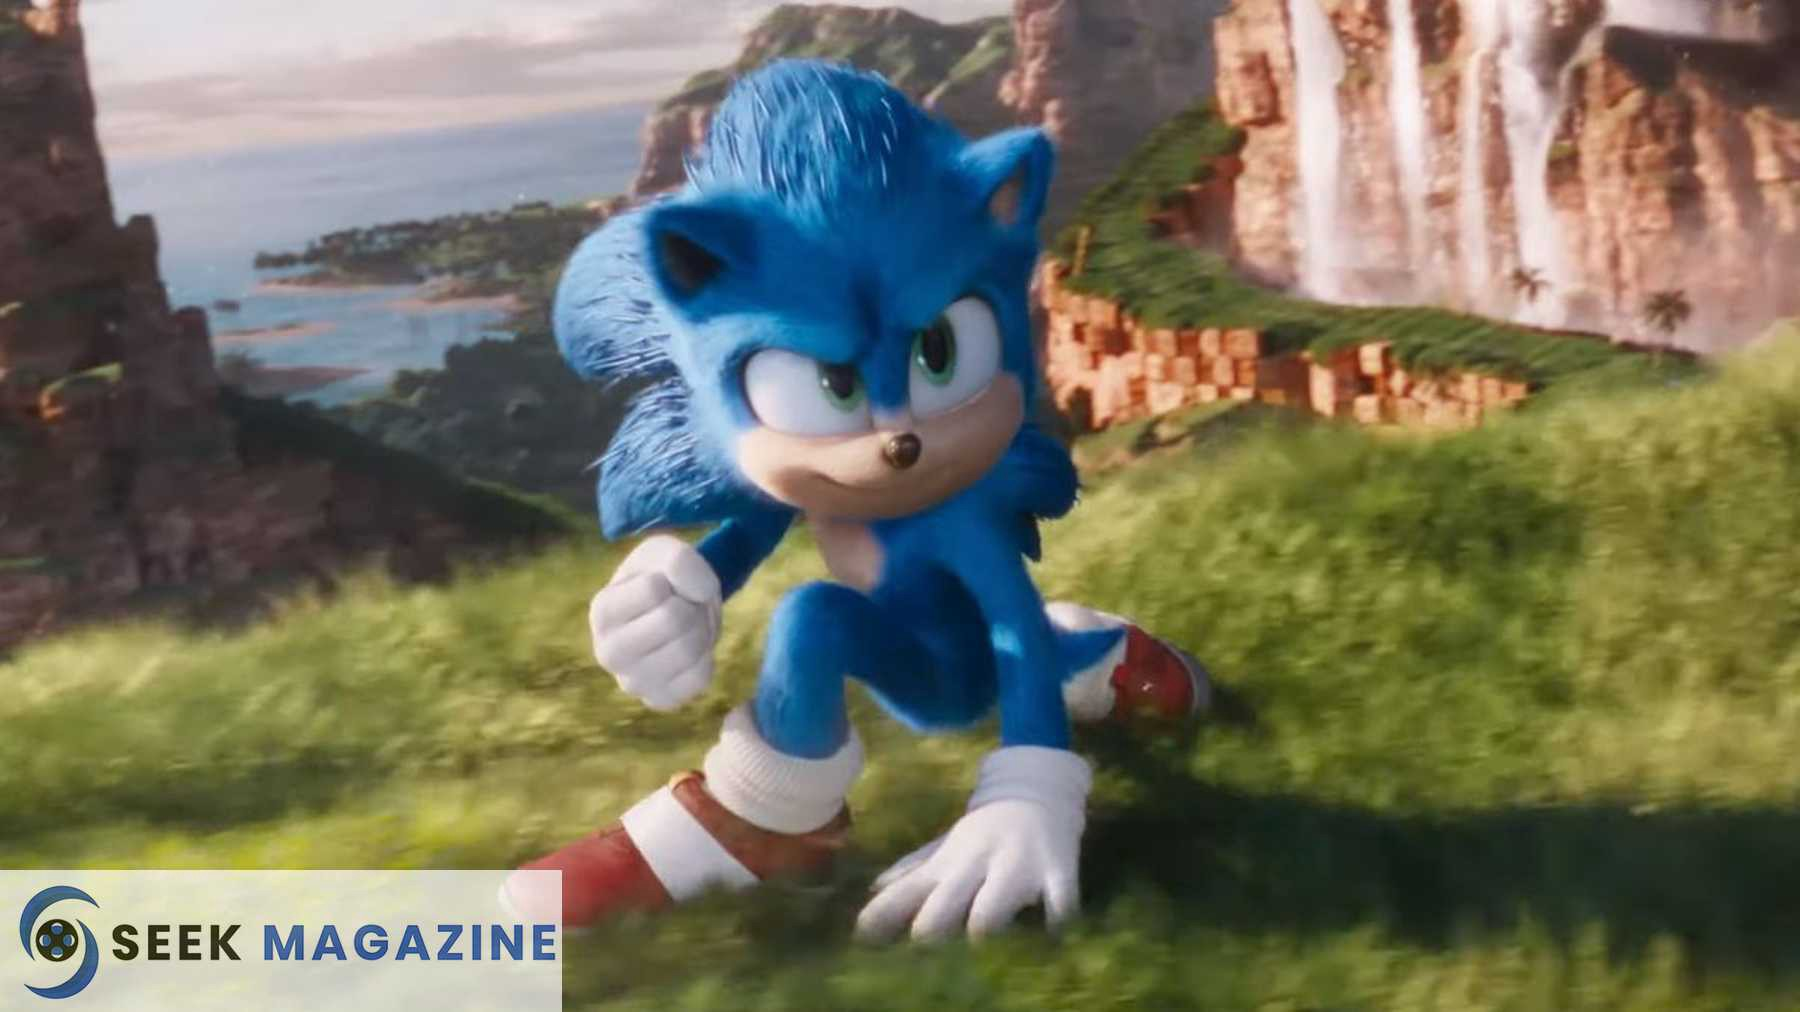 Sonic The Hedgehog Film Review 2020 Everything You Need To Know By Seek Magazine Medium